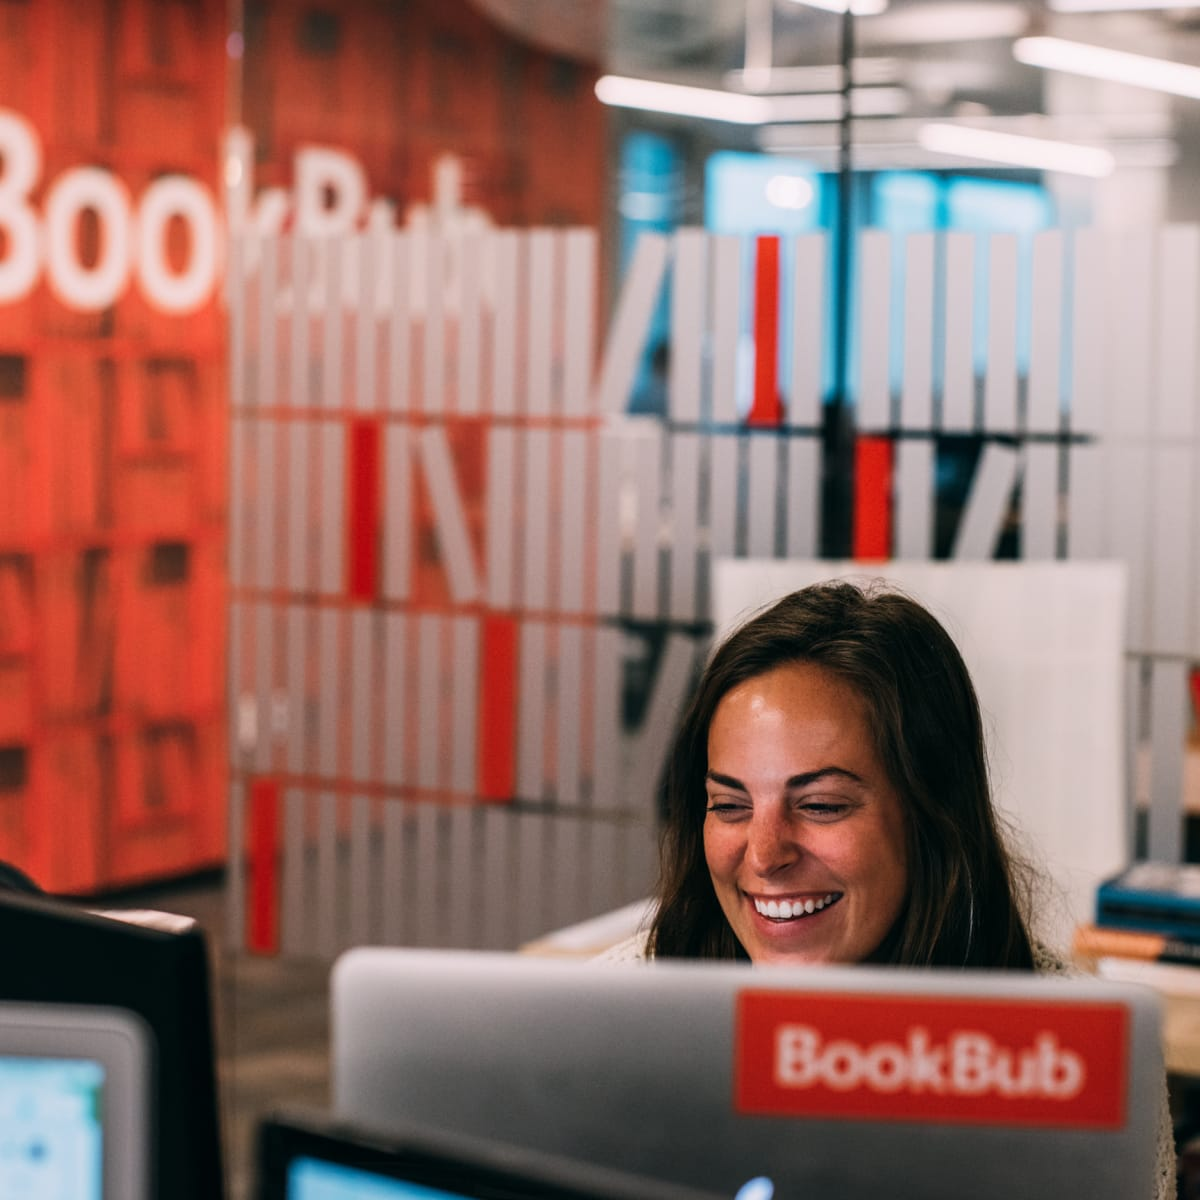 A BookBub employee sits at her computer in the BookBub office, smiling.